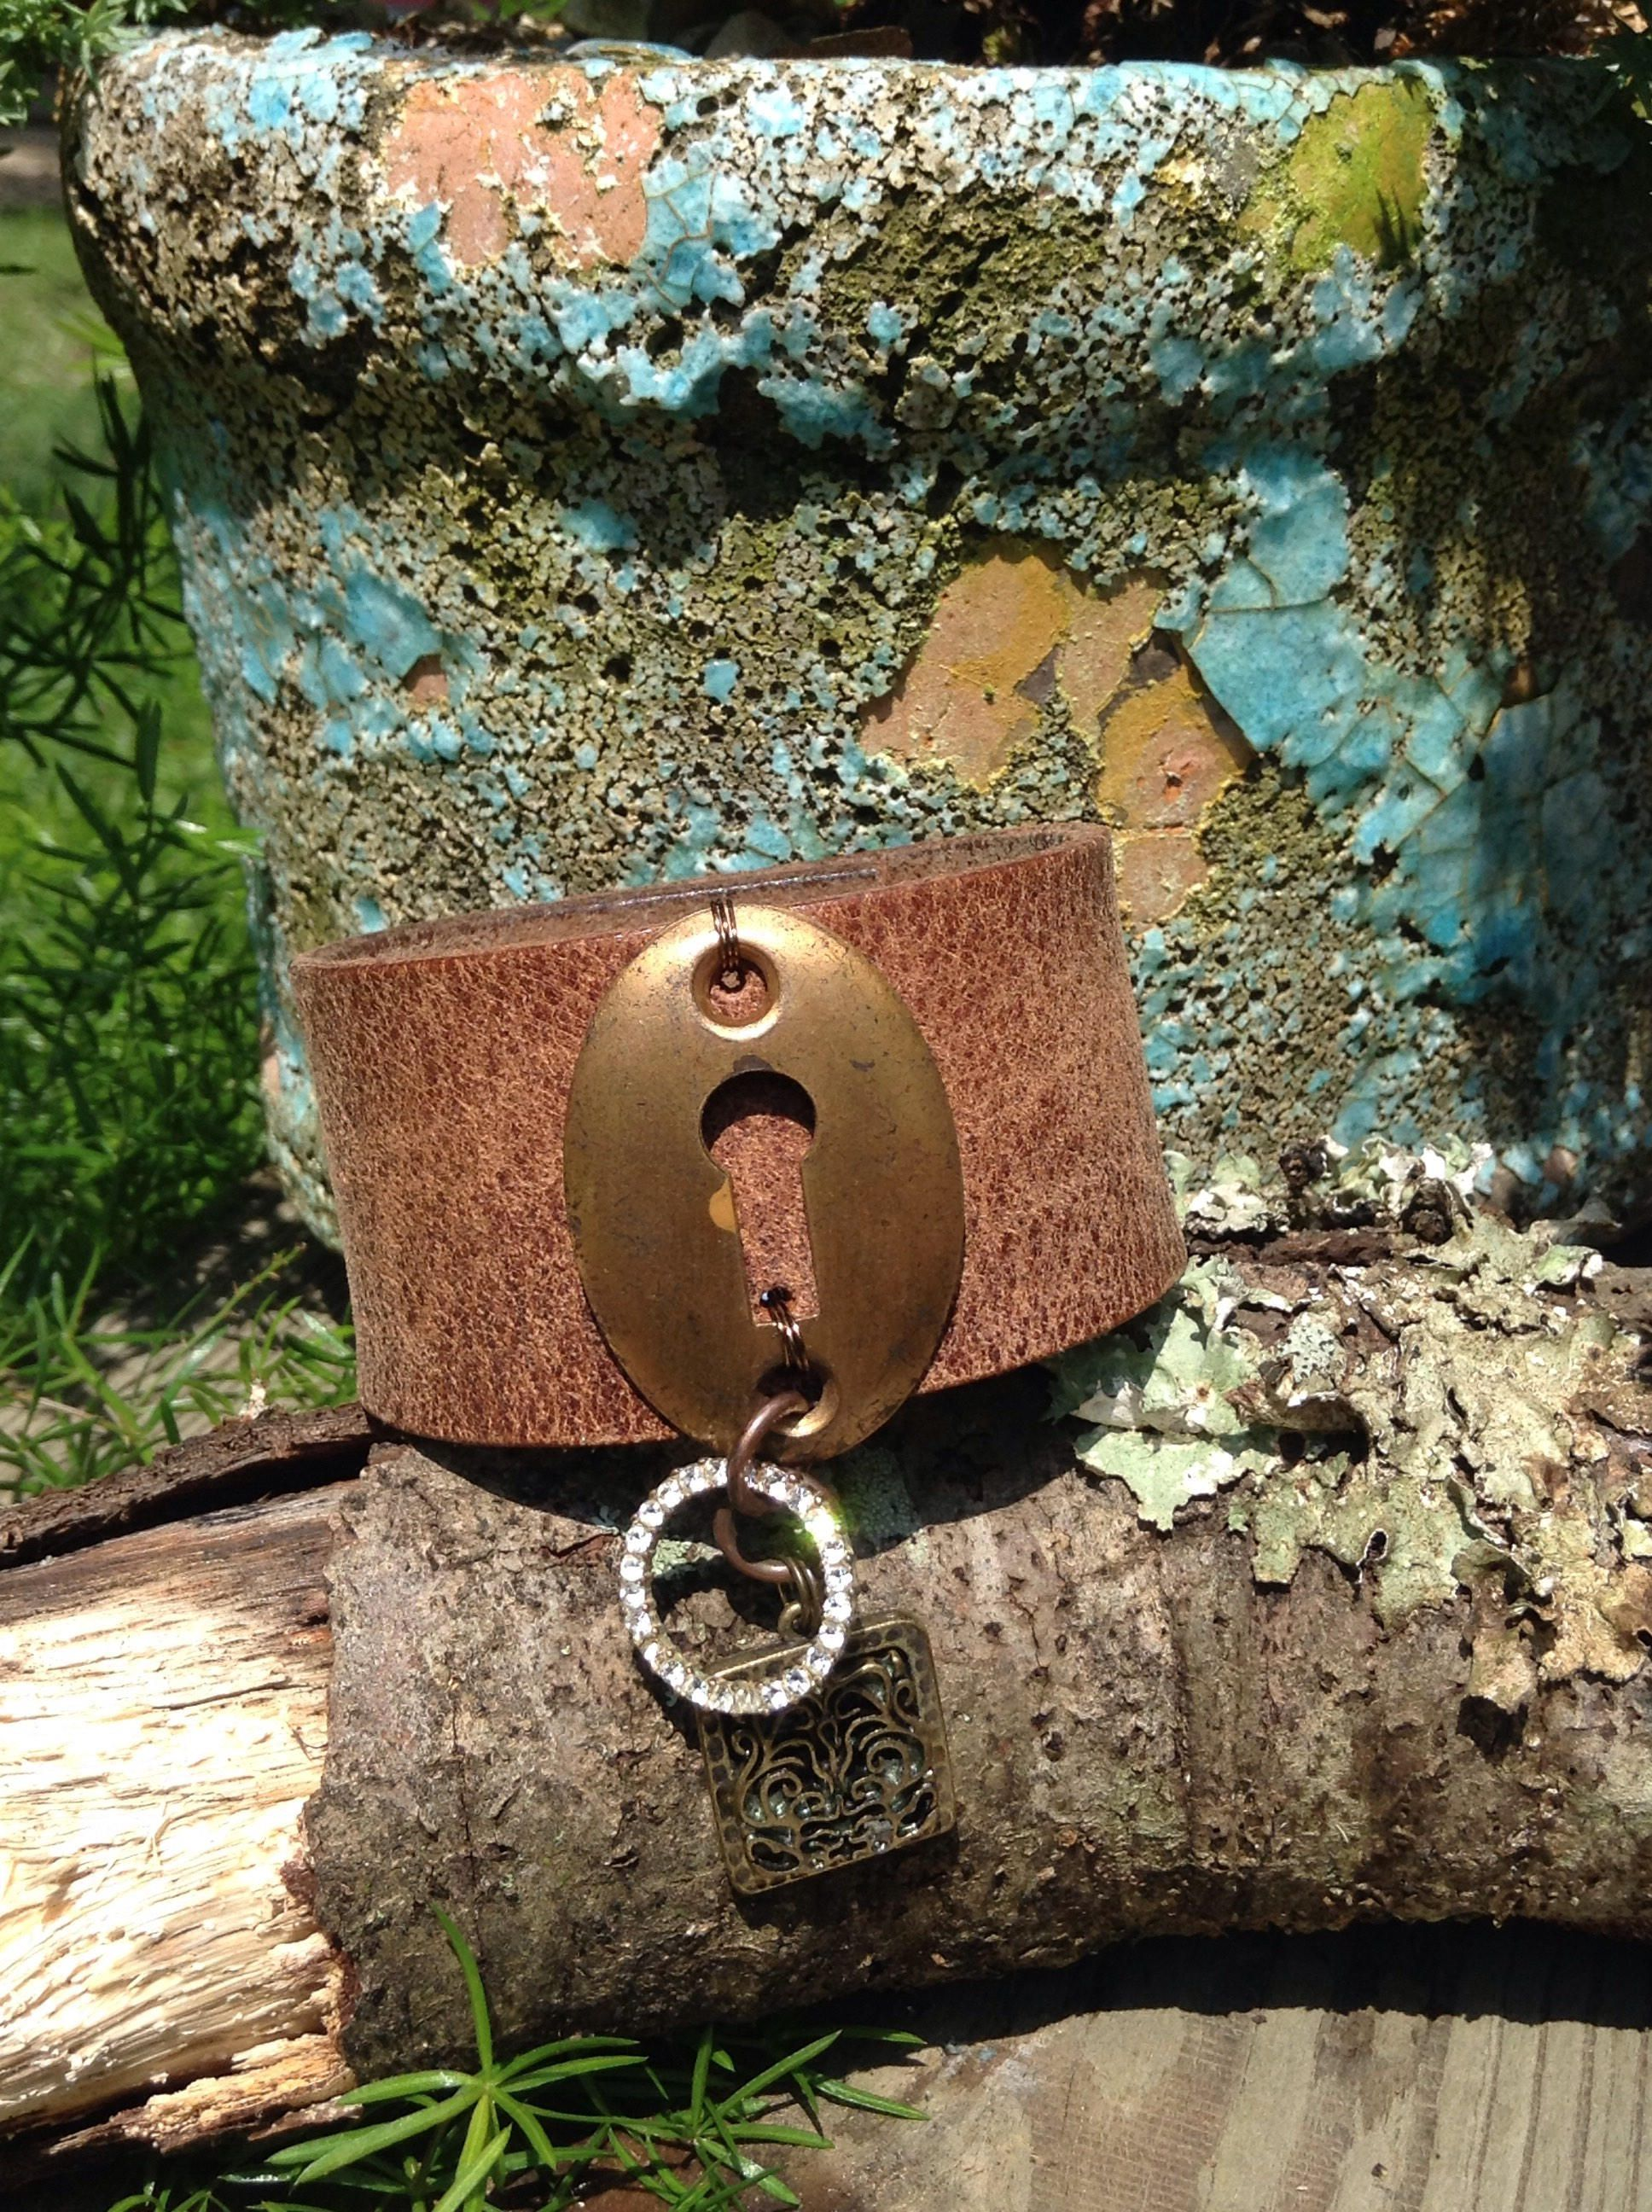 Keyhole and Vintage Jeweled Leather Cuff Bracelet for Women, Jeweled Leather Cuff, Leather Cuff for Women, Free Shipping by TheVintageVibeFinds on Etsy